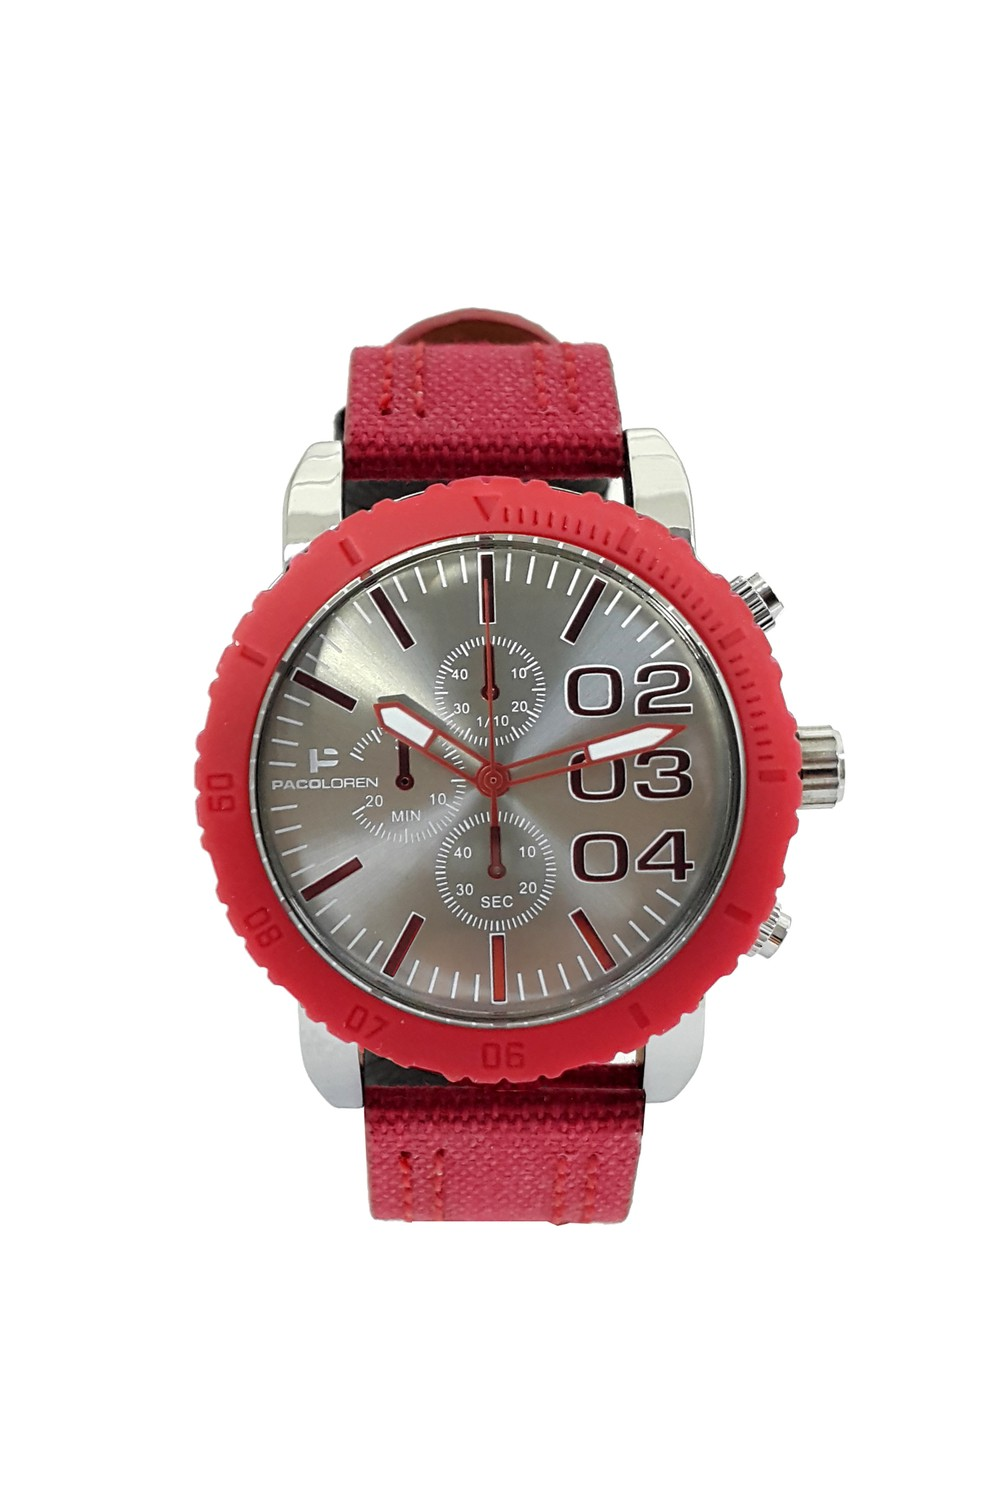 Paco Loren Men's Casual Watch st658